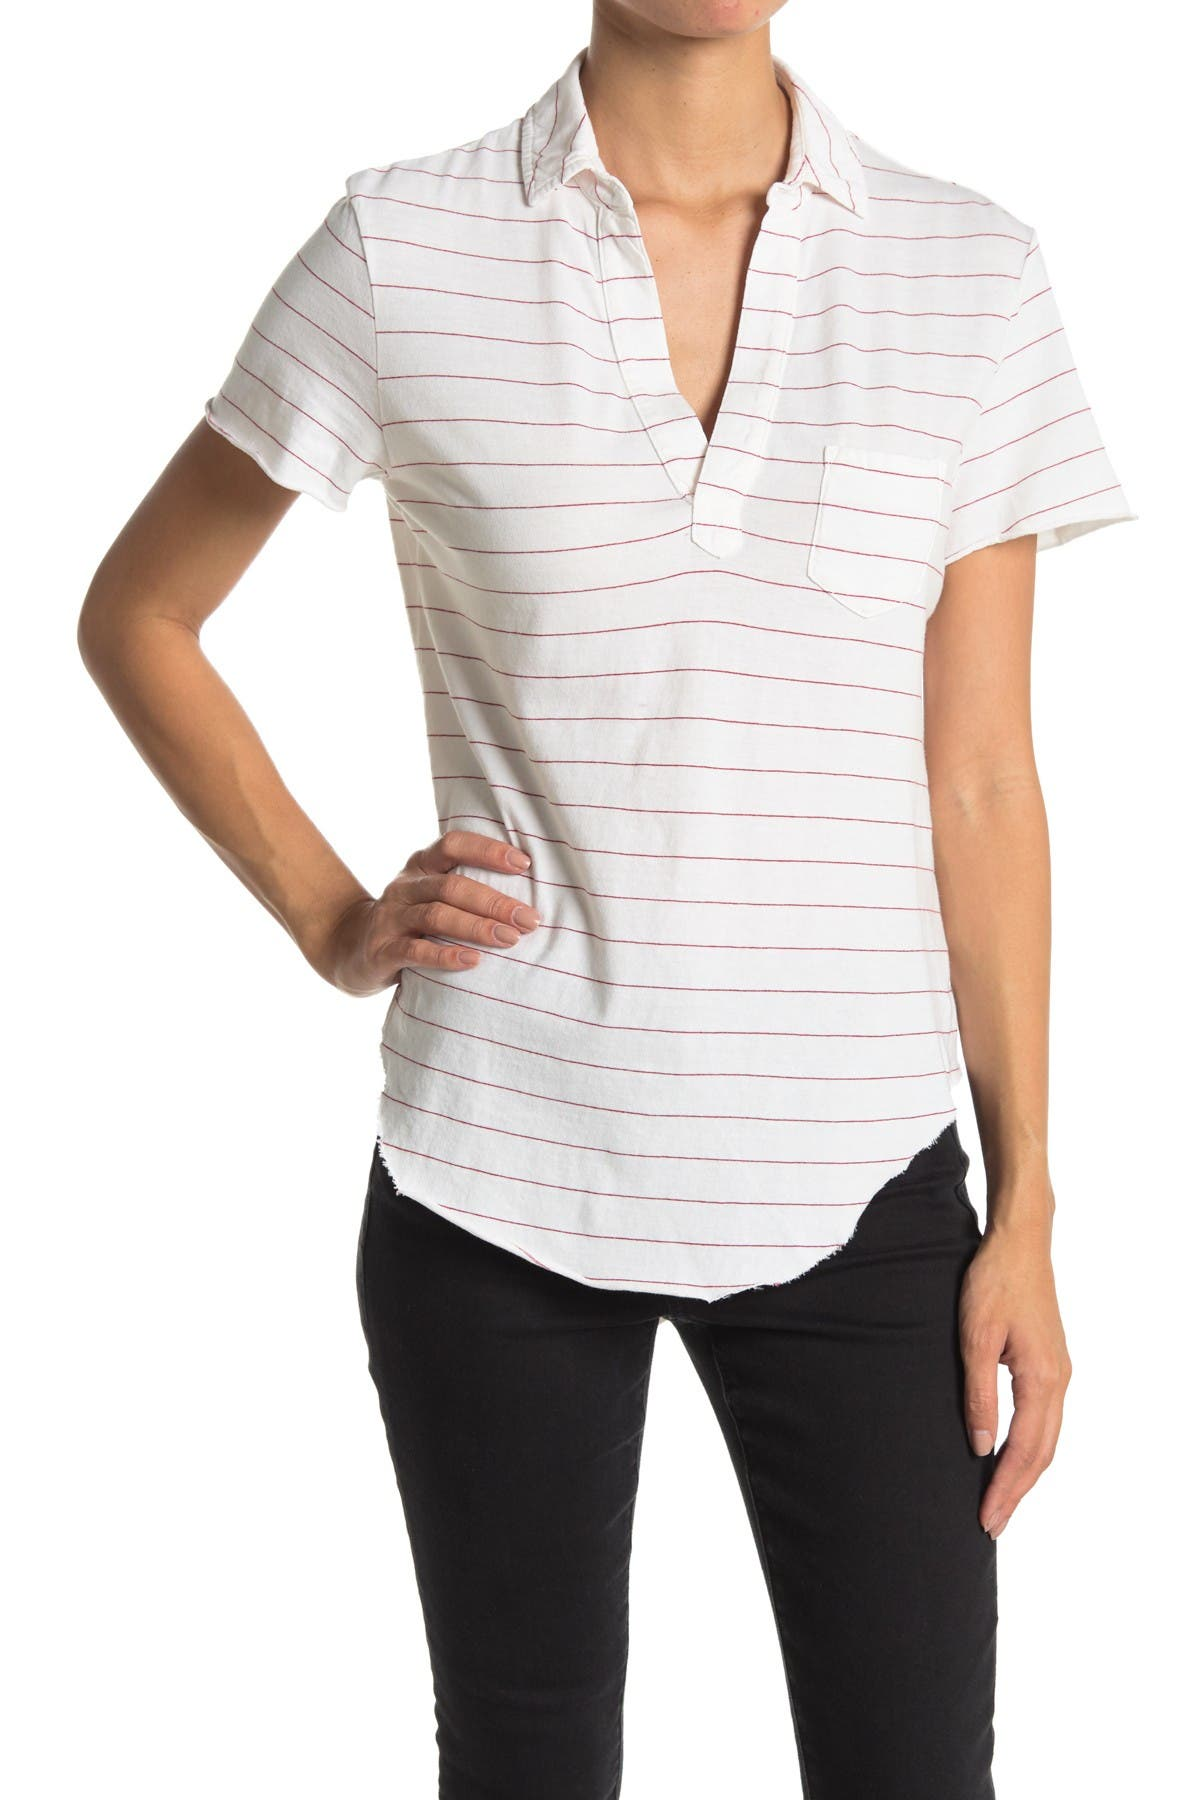 Image of FRANK & EILEEN Striped Curved Hem Jersey Polo